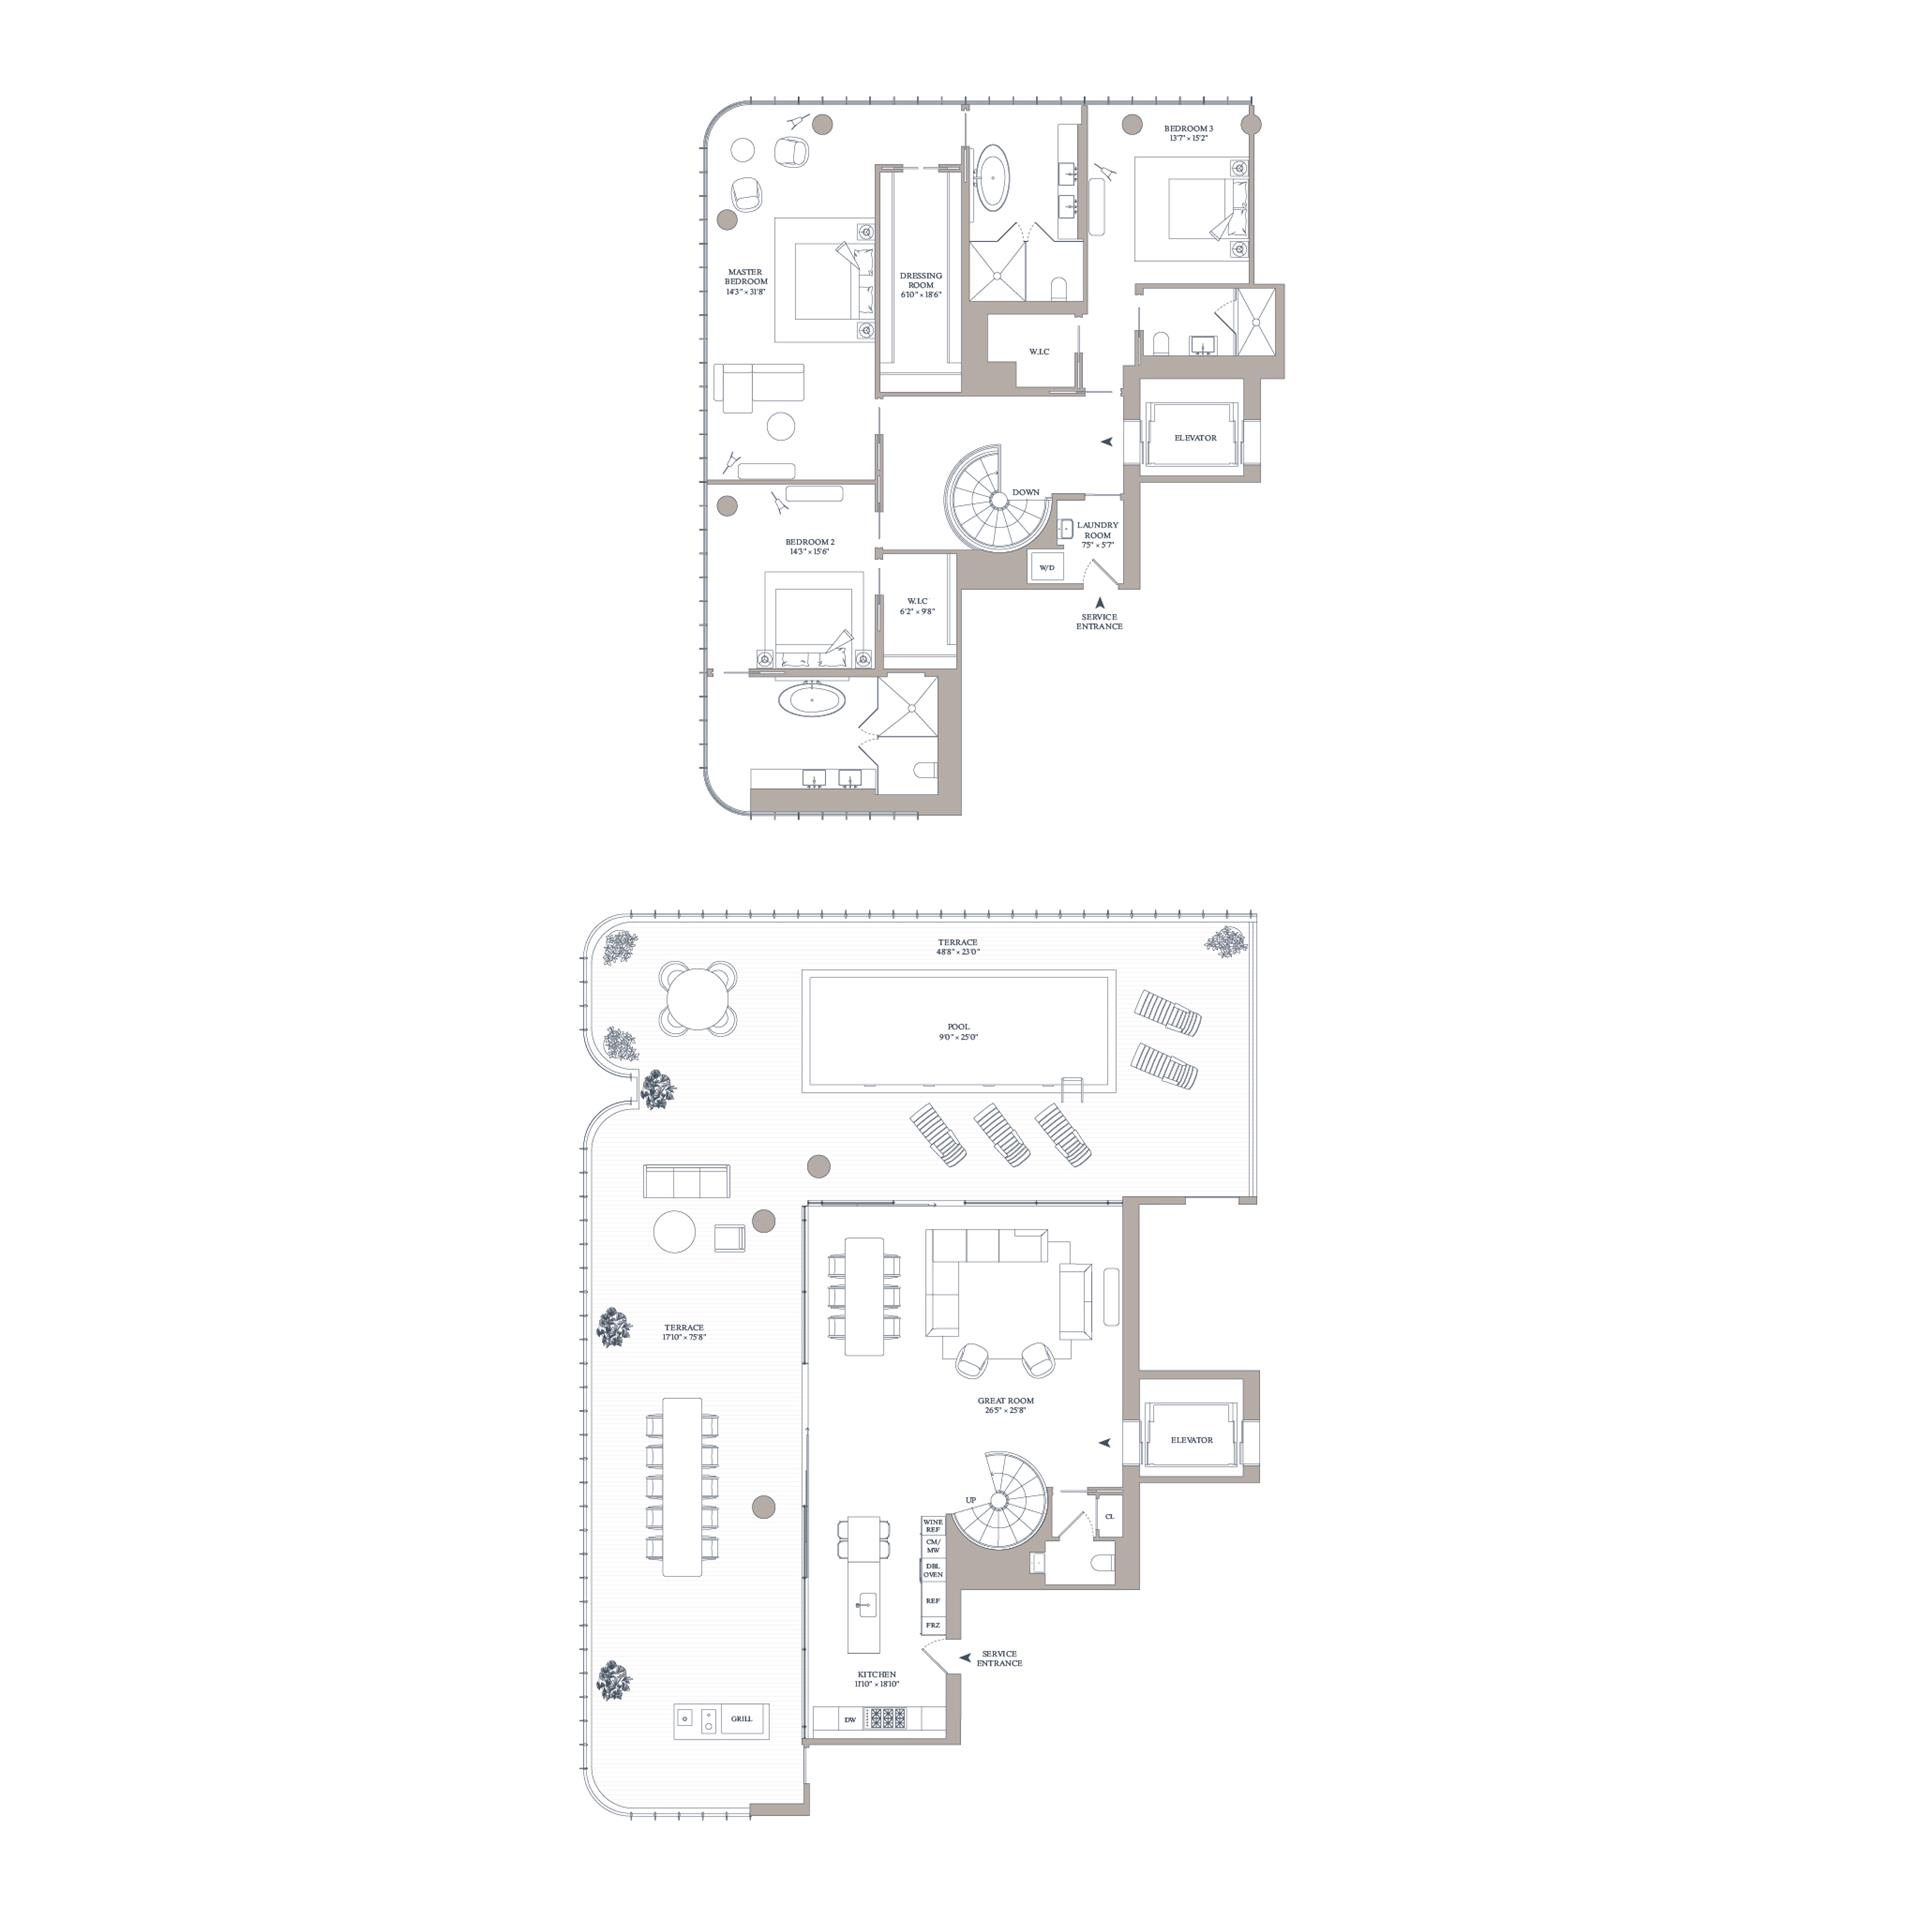 Floor plan of 565 Broome St, N16A - SoHo - Nolita, New York